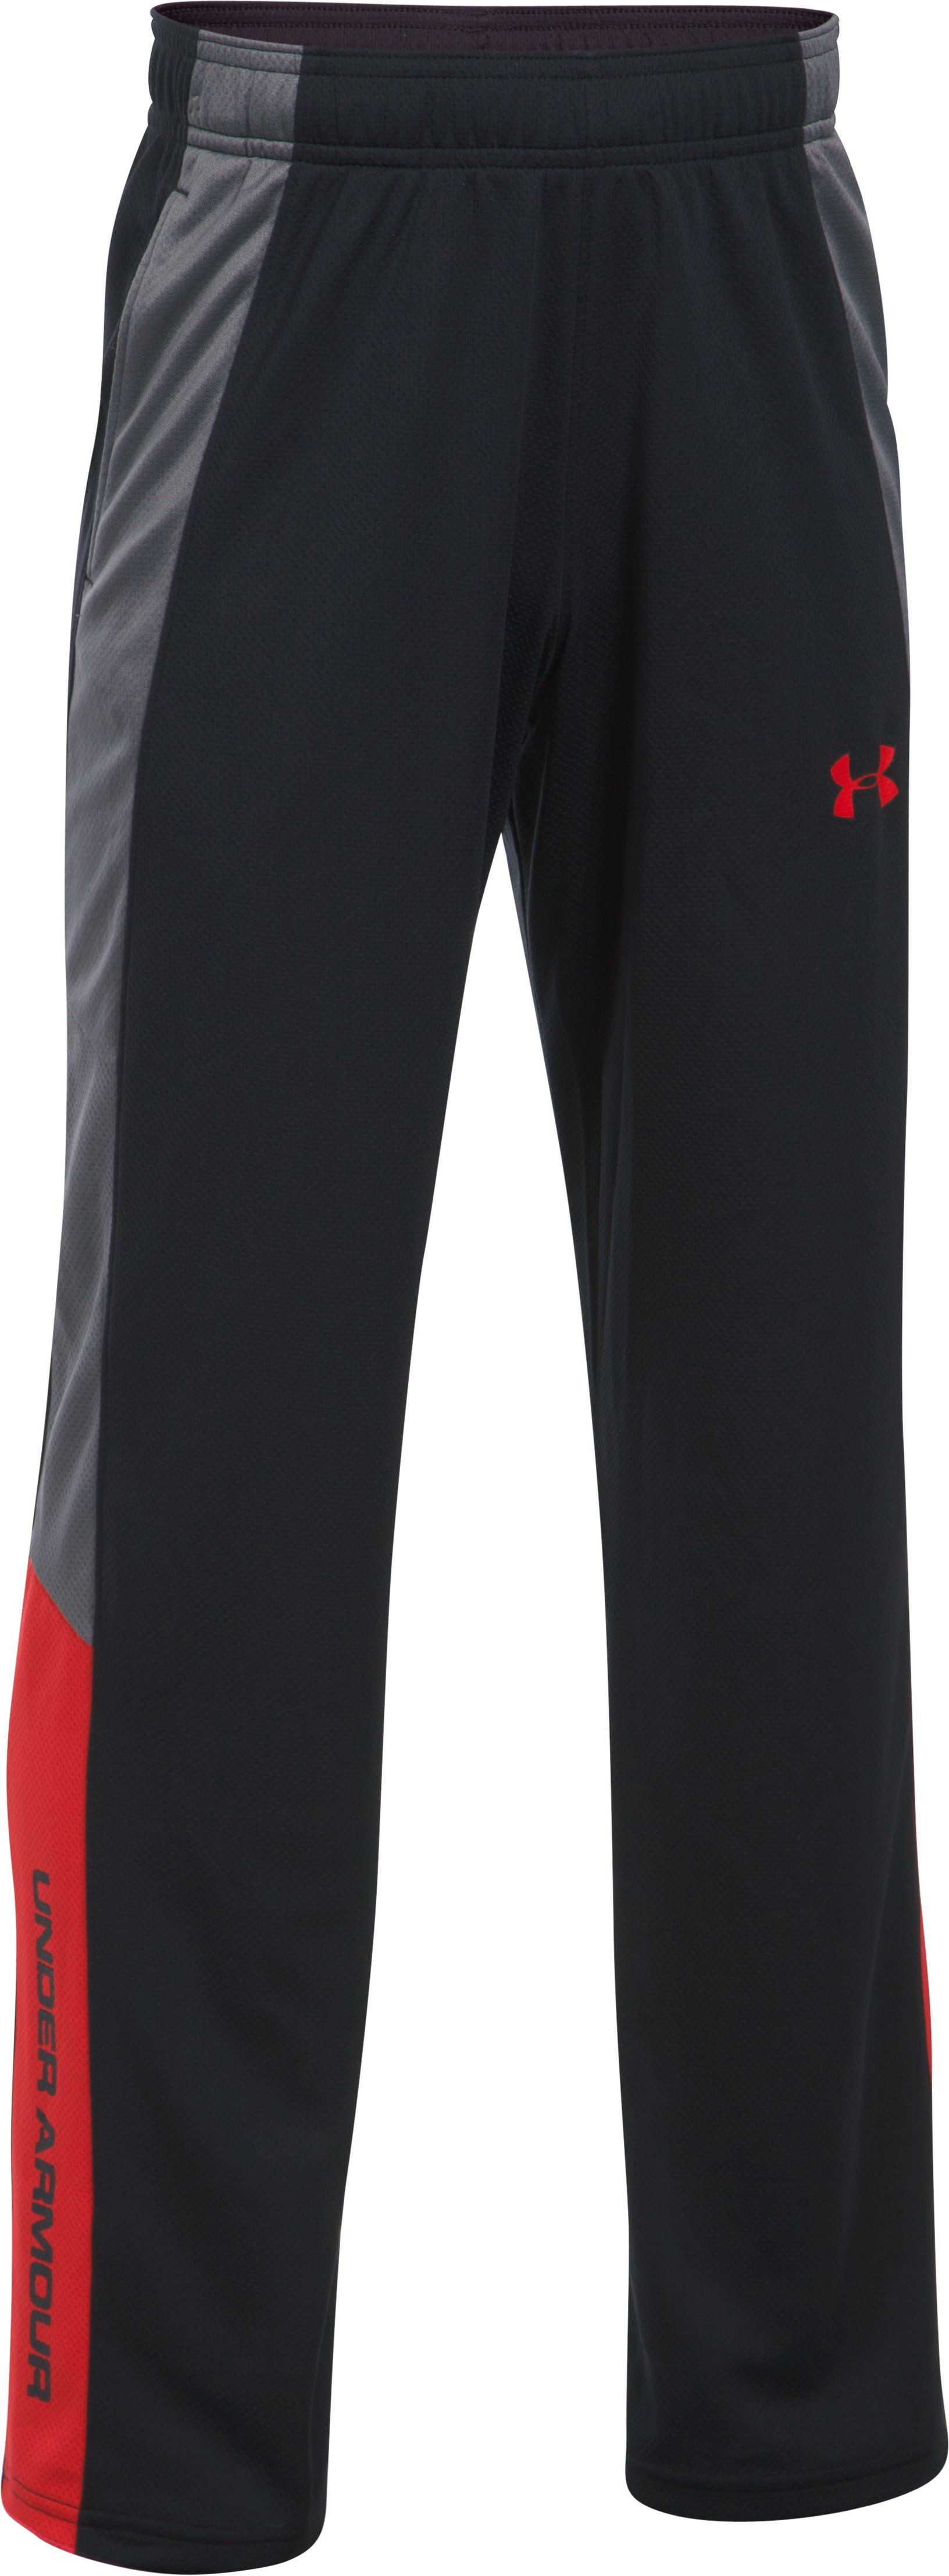 Boys' UA Advantage Warm-Up Pants, Black